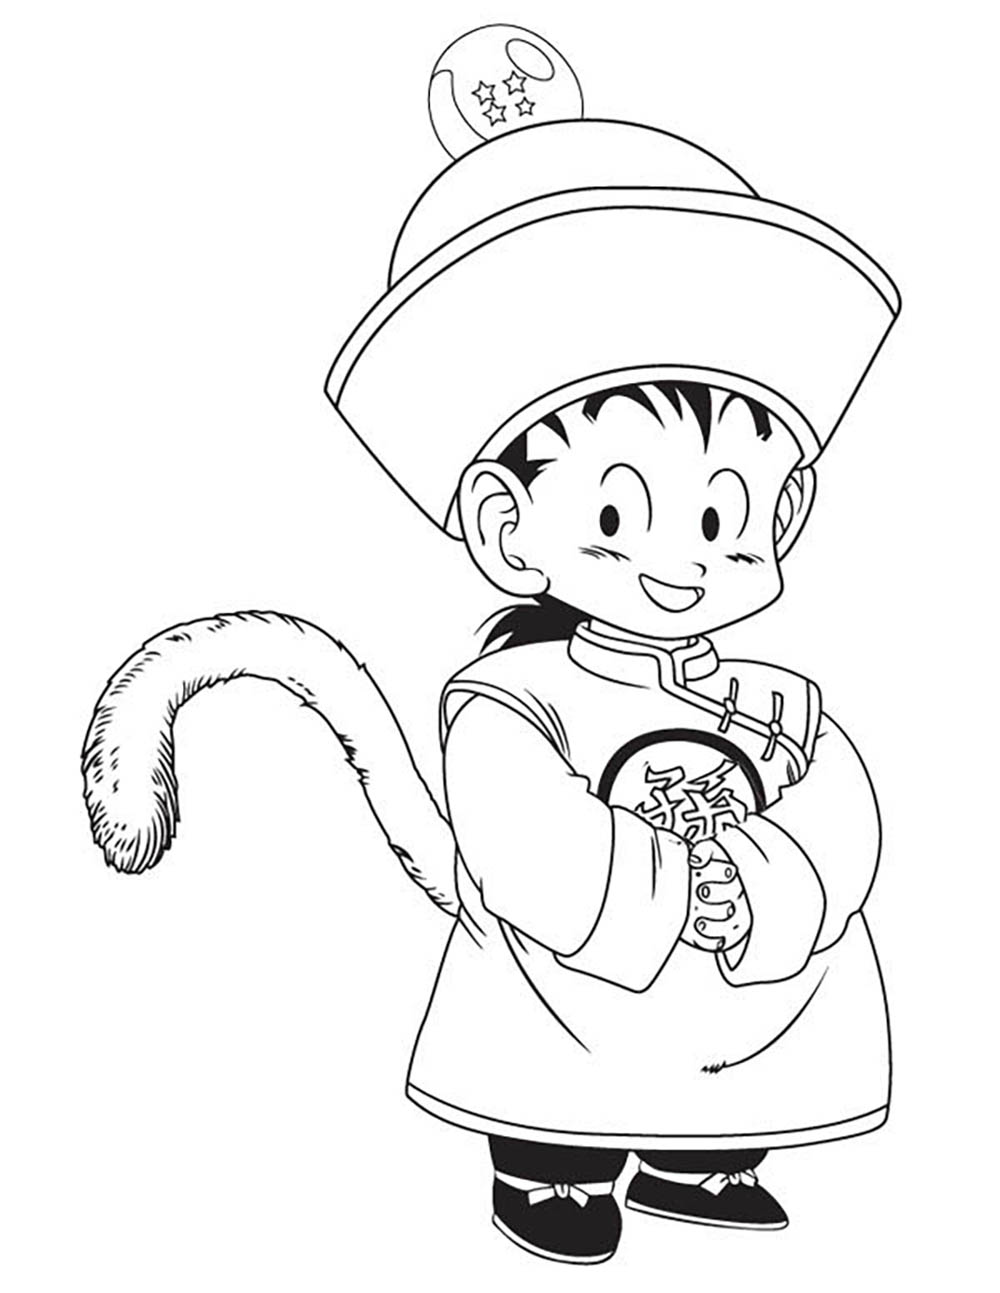 Facile dragon ball gohan petit coloriage dragon ball z - Coloriage sangohan ...